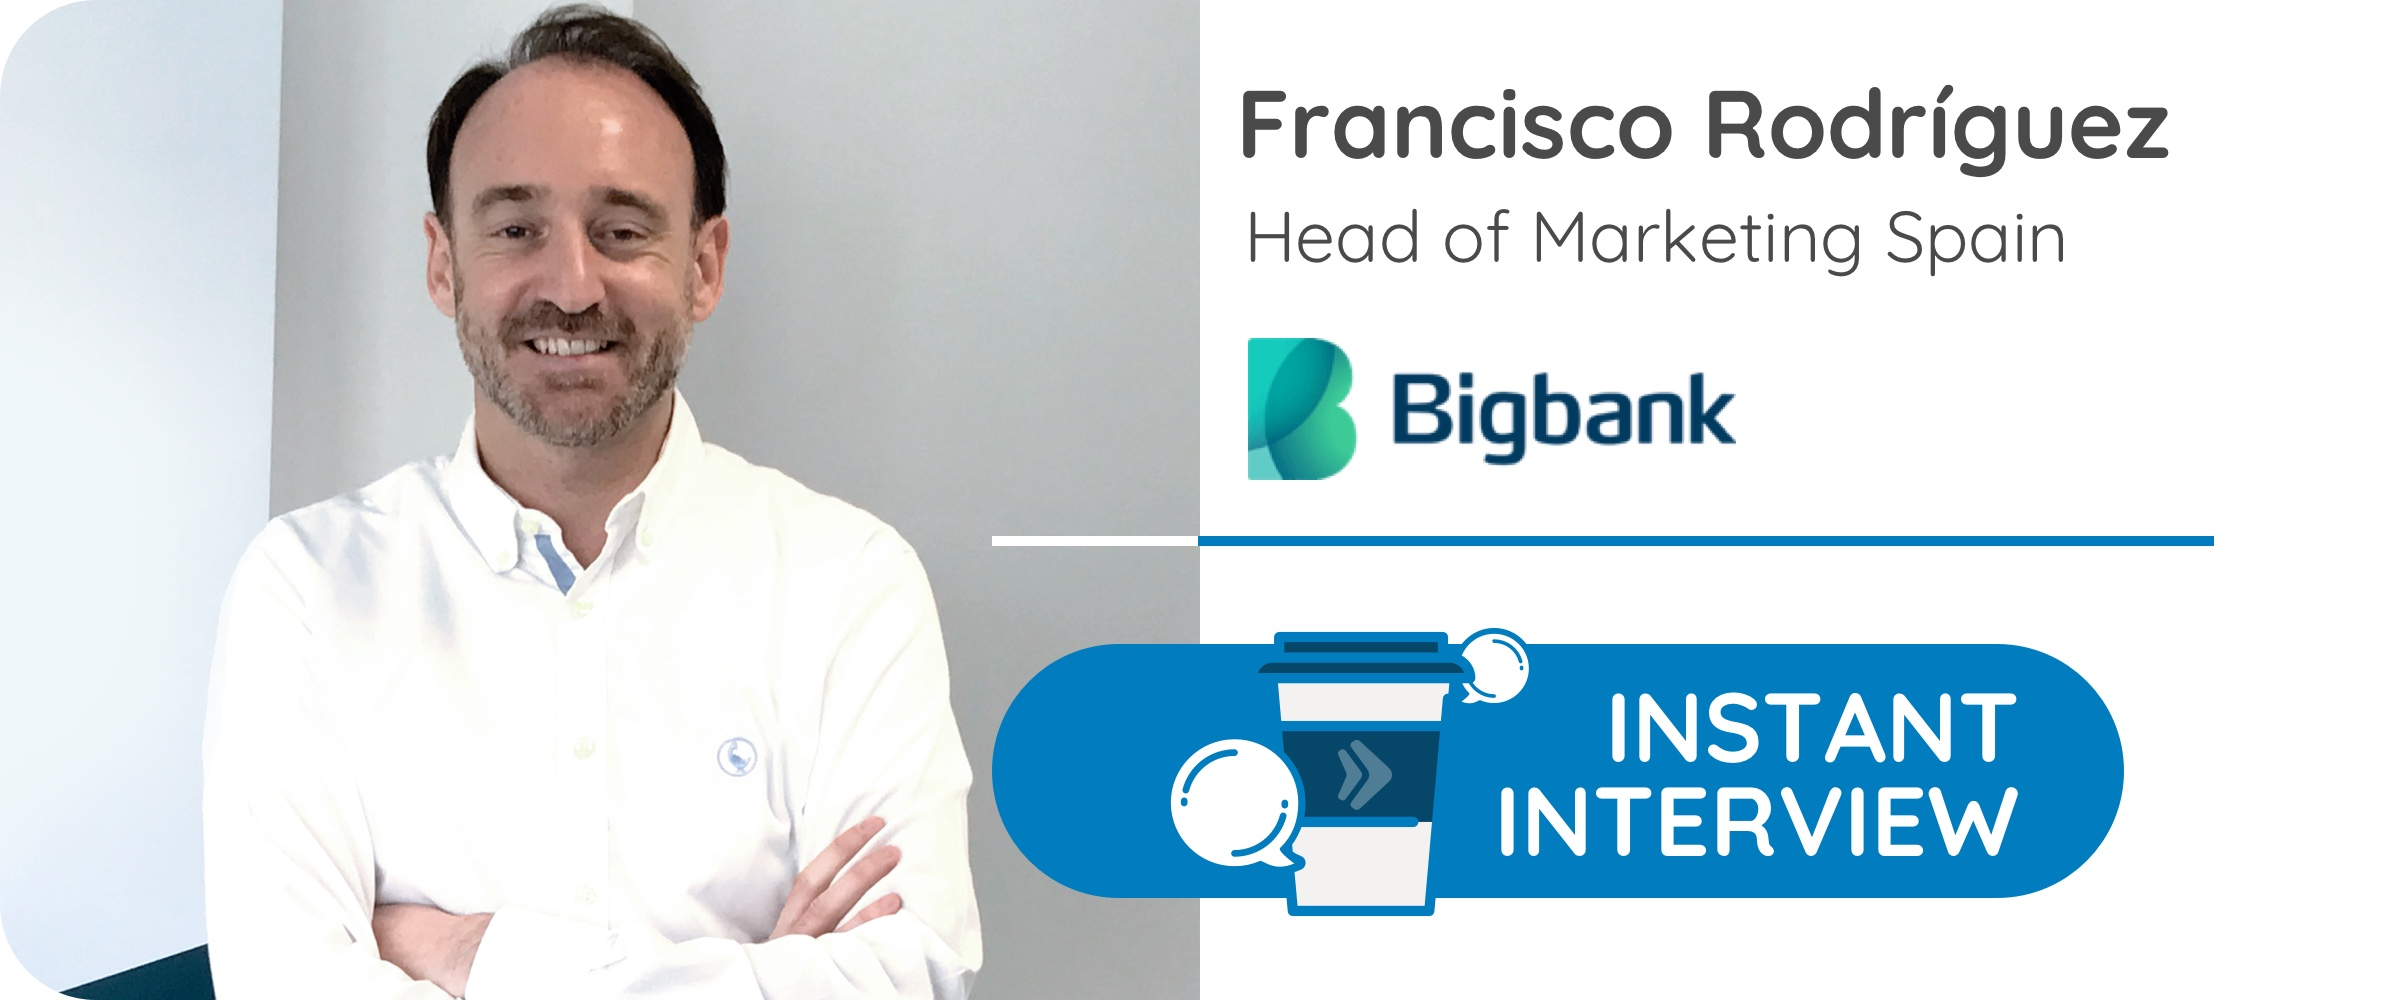 Francisco Rodriguez_Instantcredit _instantinterview